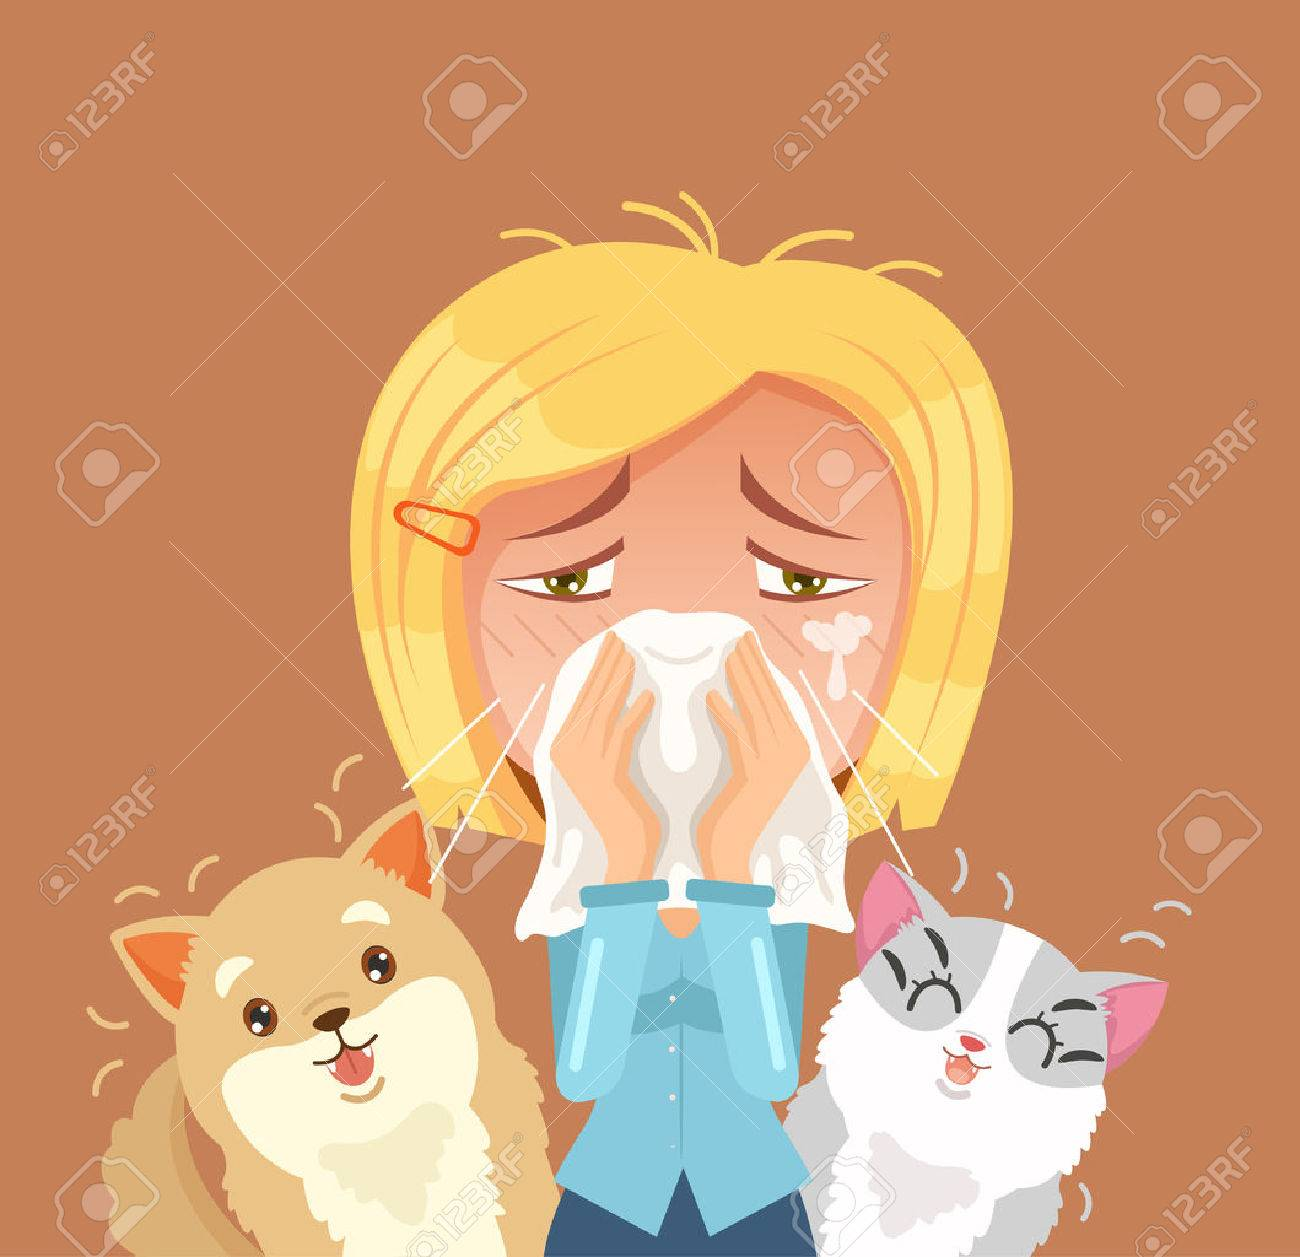 Allergic to domestic animals. Woman character sneeze. Vector flat cartoon illustration - 66662553